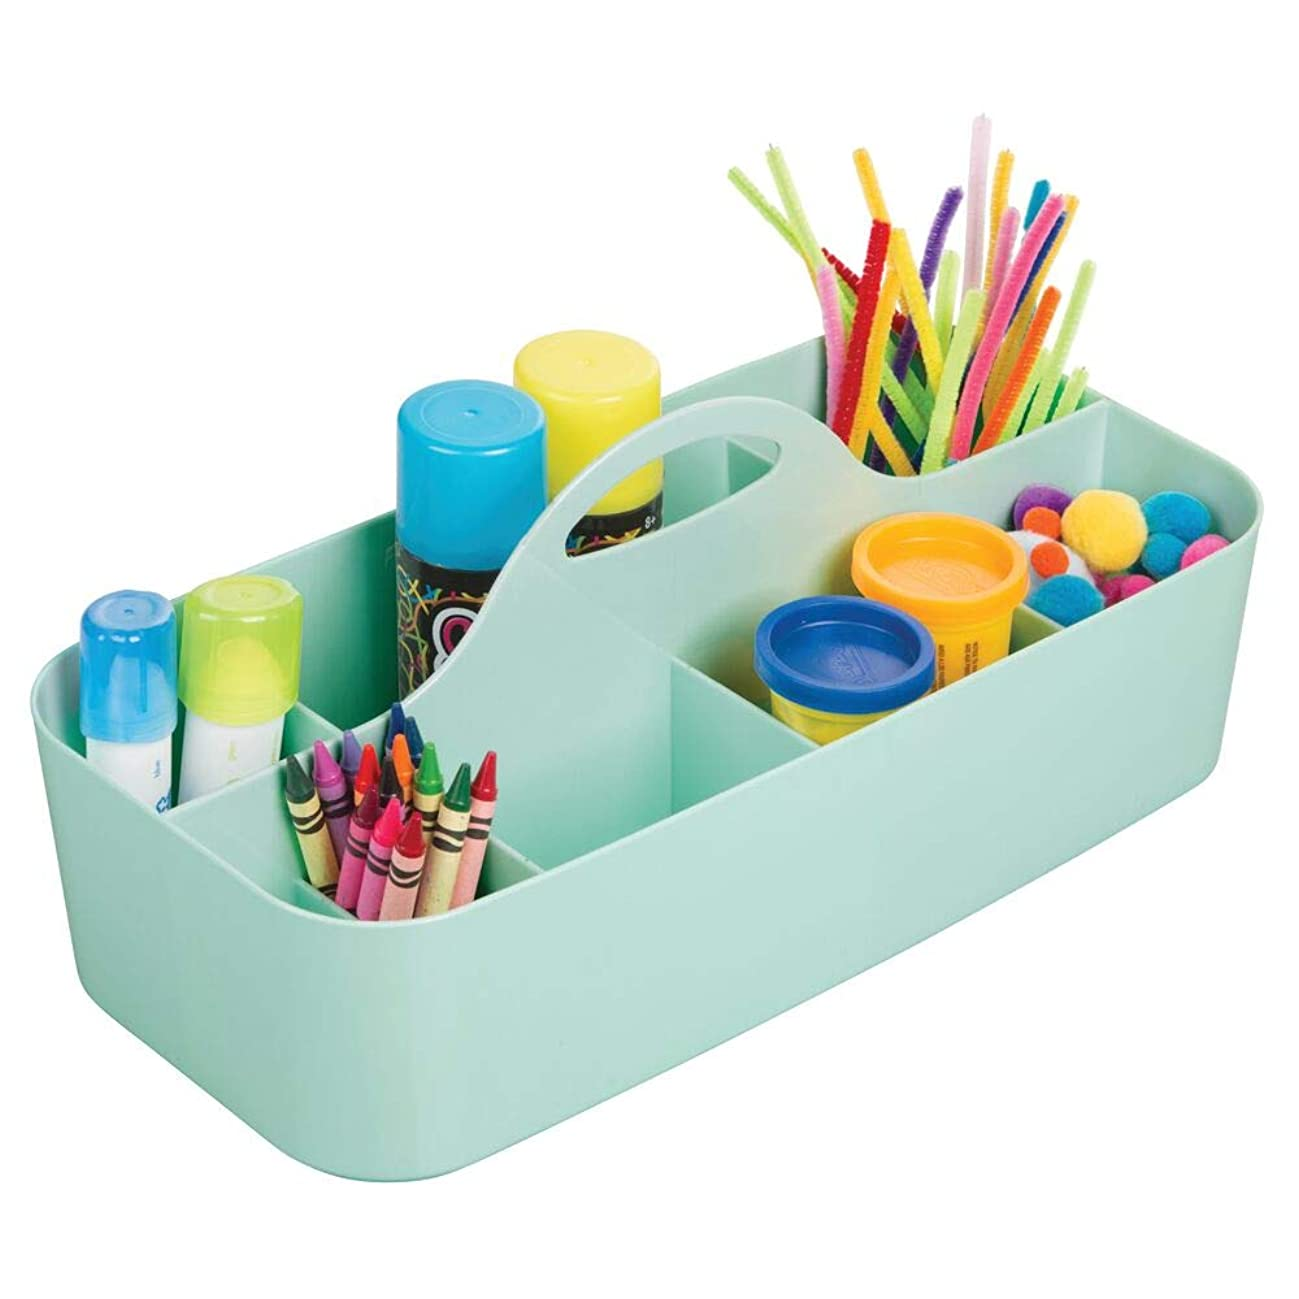 mDesign Plastic Portable Craft Storage Organizer Caddy Tote, Divided Basket Bin with Handle for Craft, Sewing, Art Supplies - Holds Paint Brushes, Colored Pencils, Stickers, Glue, X-Large - Mint Green